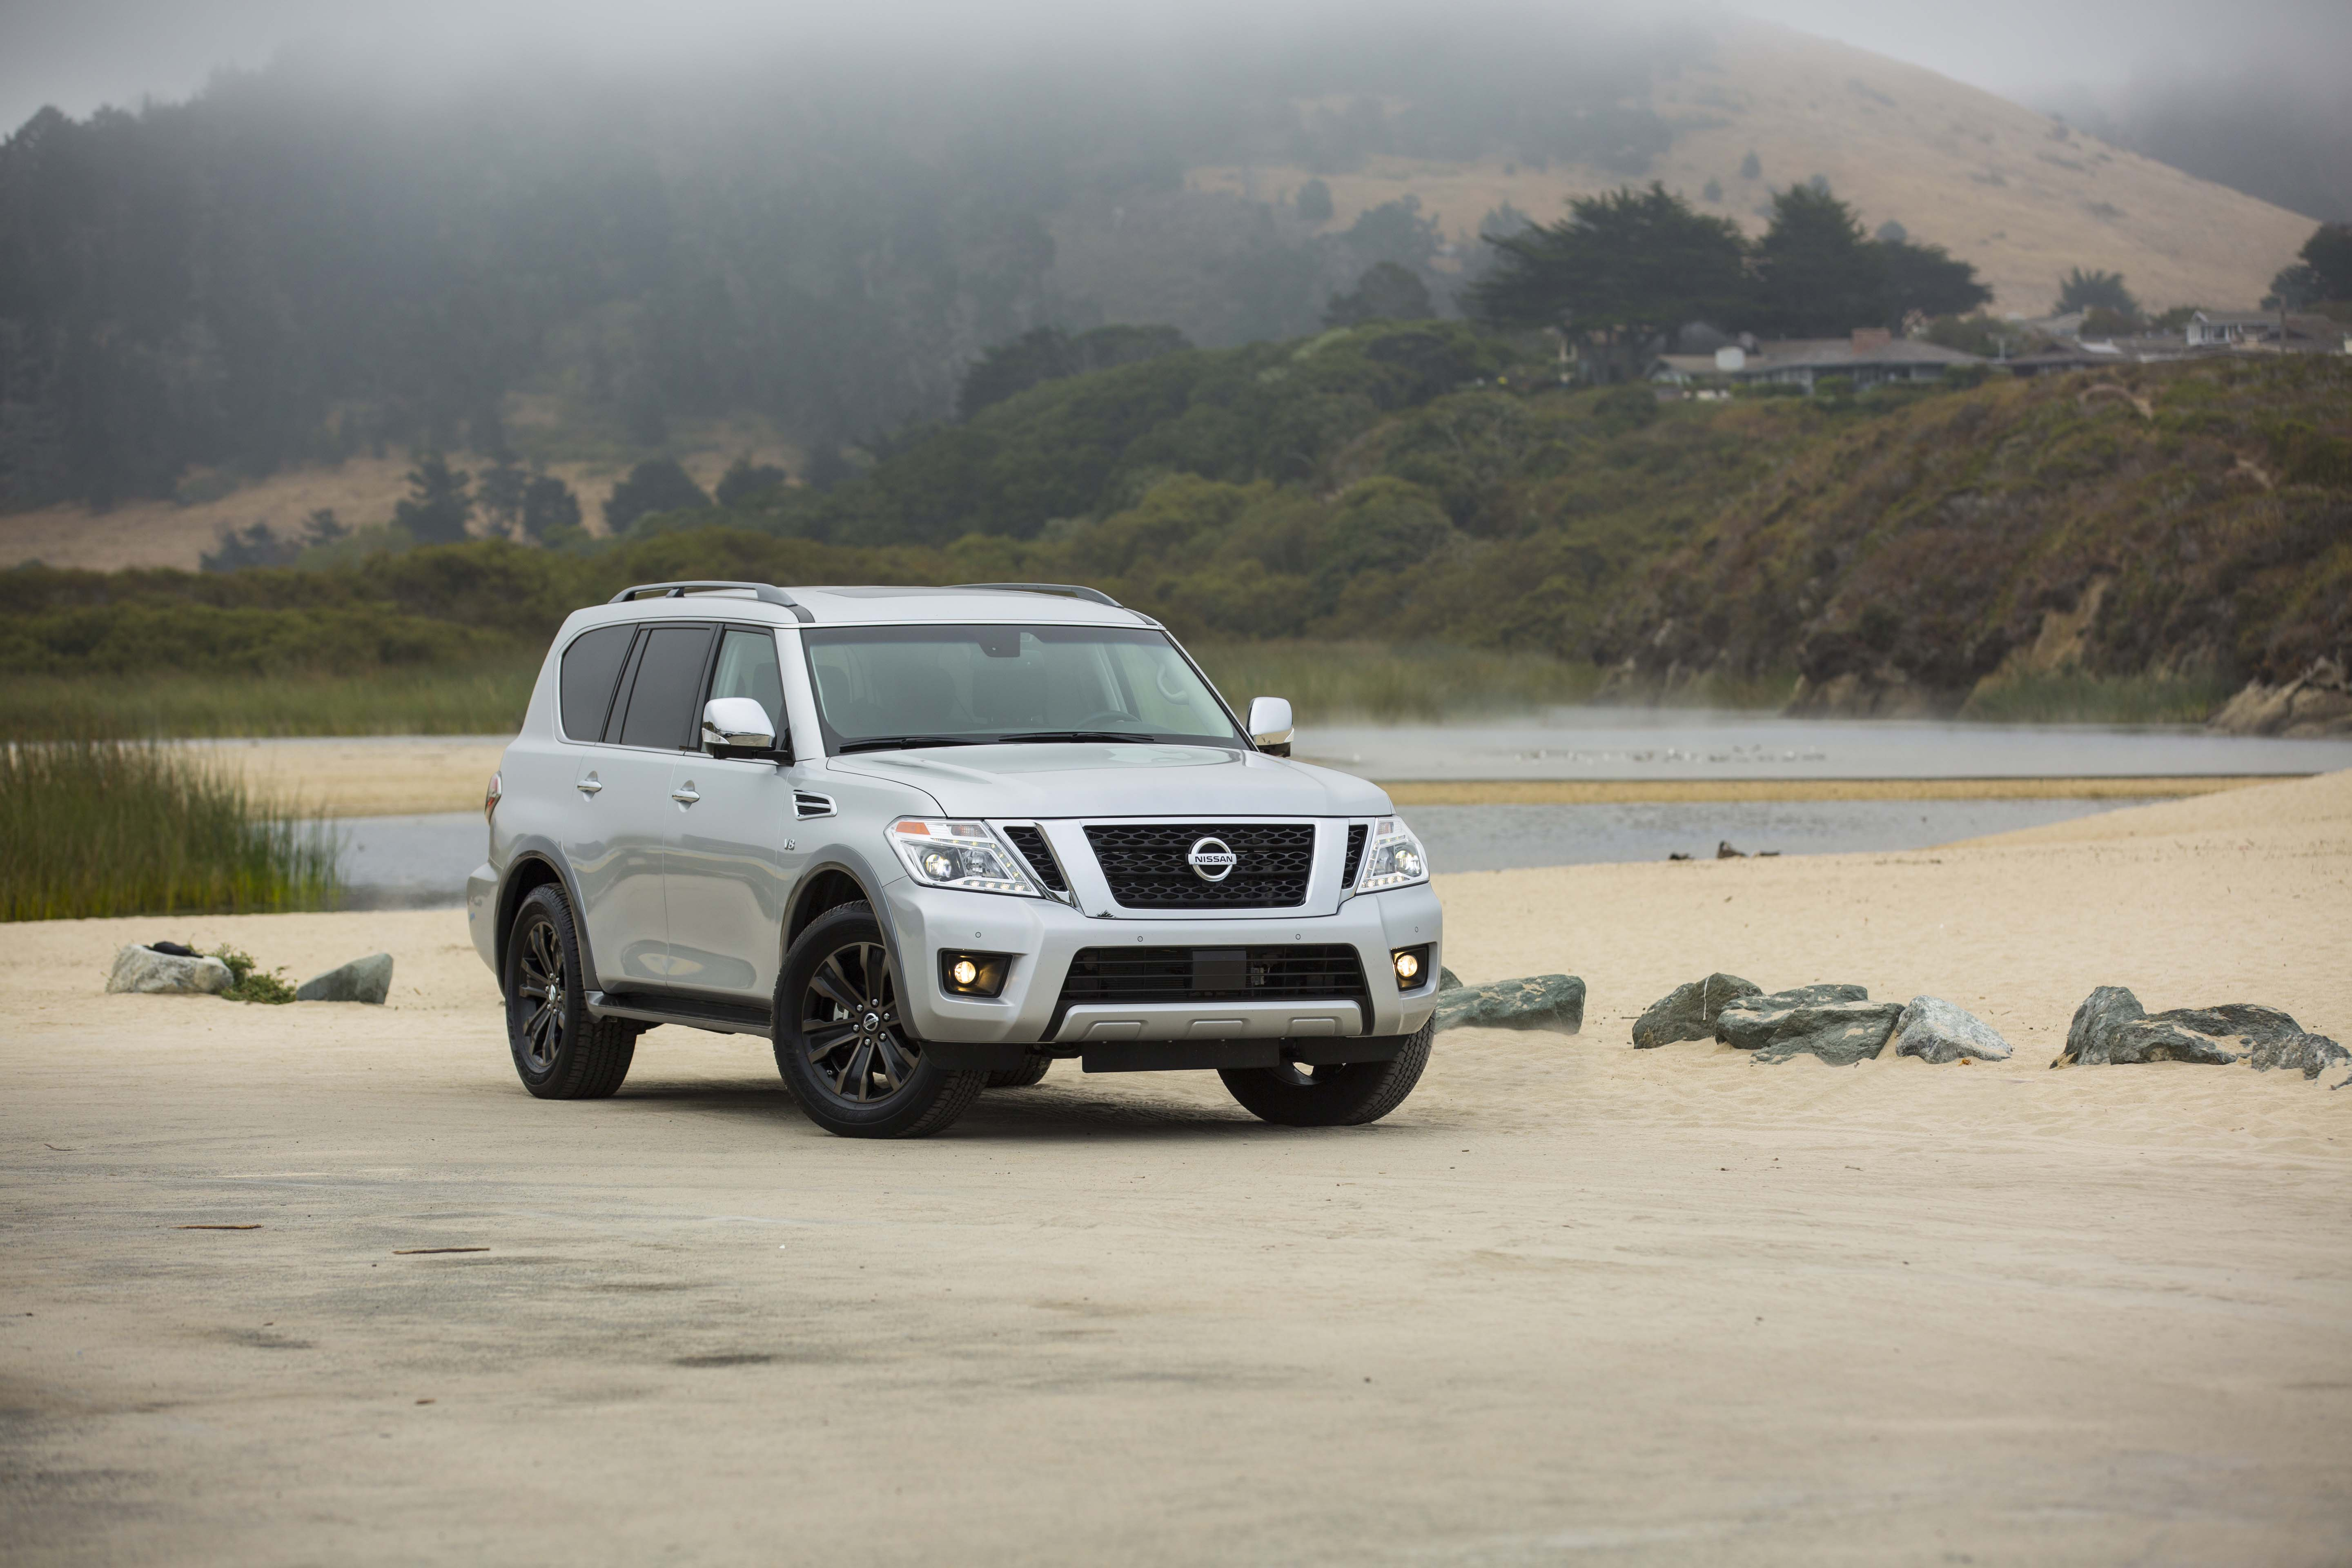 base rises suv nissan slightly to news angular armada rear price sv